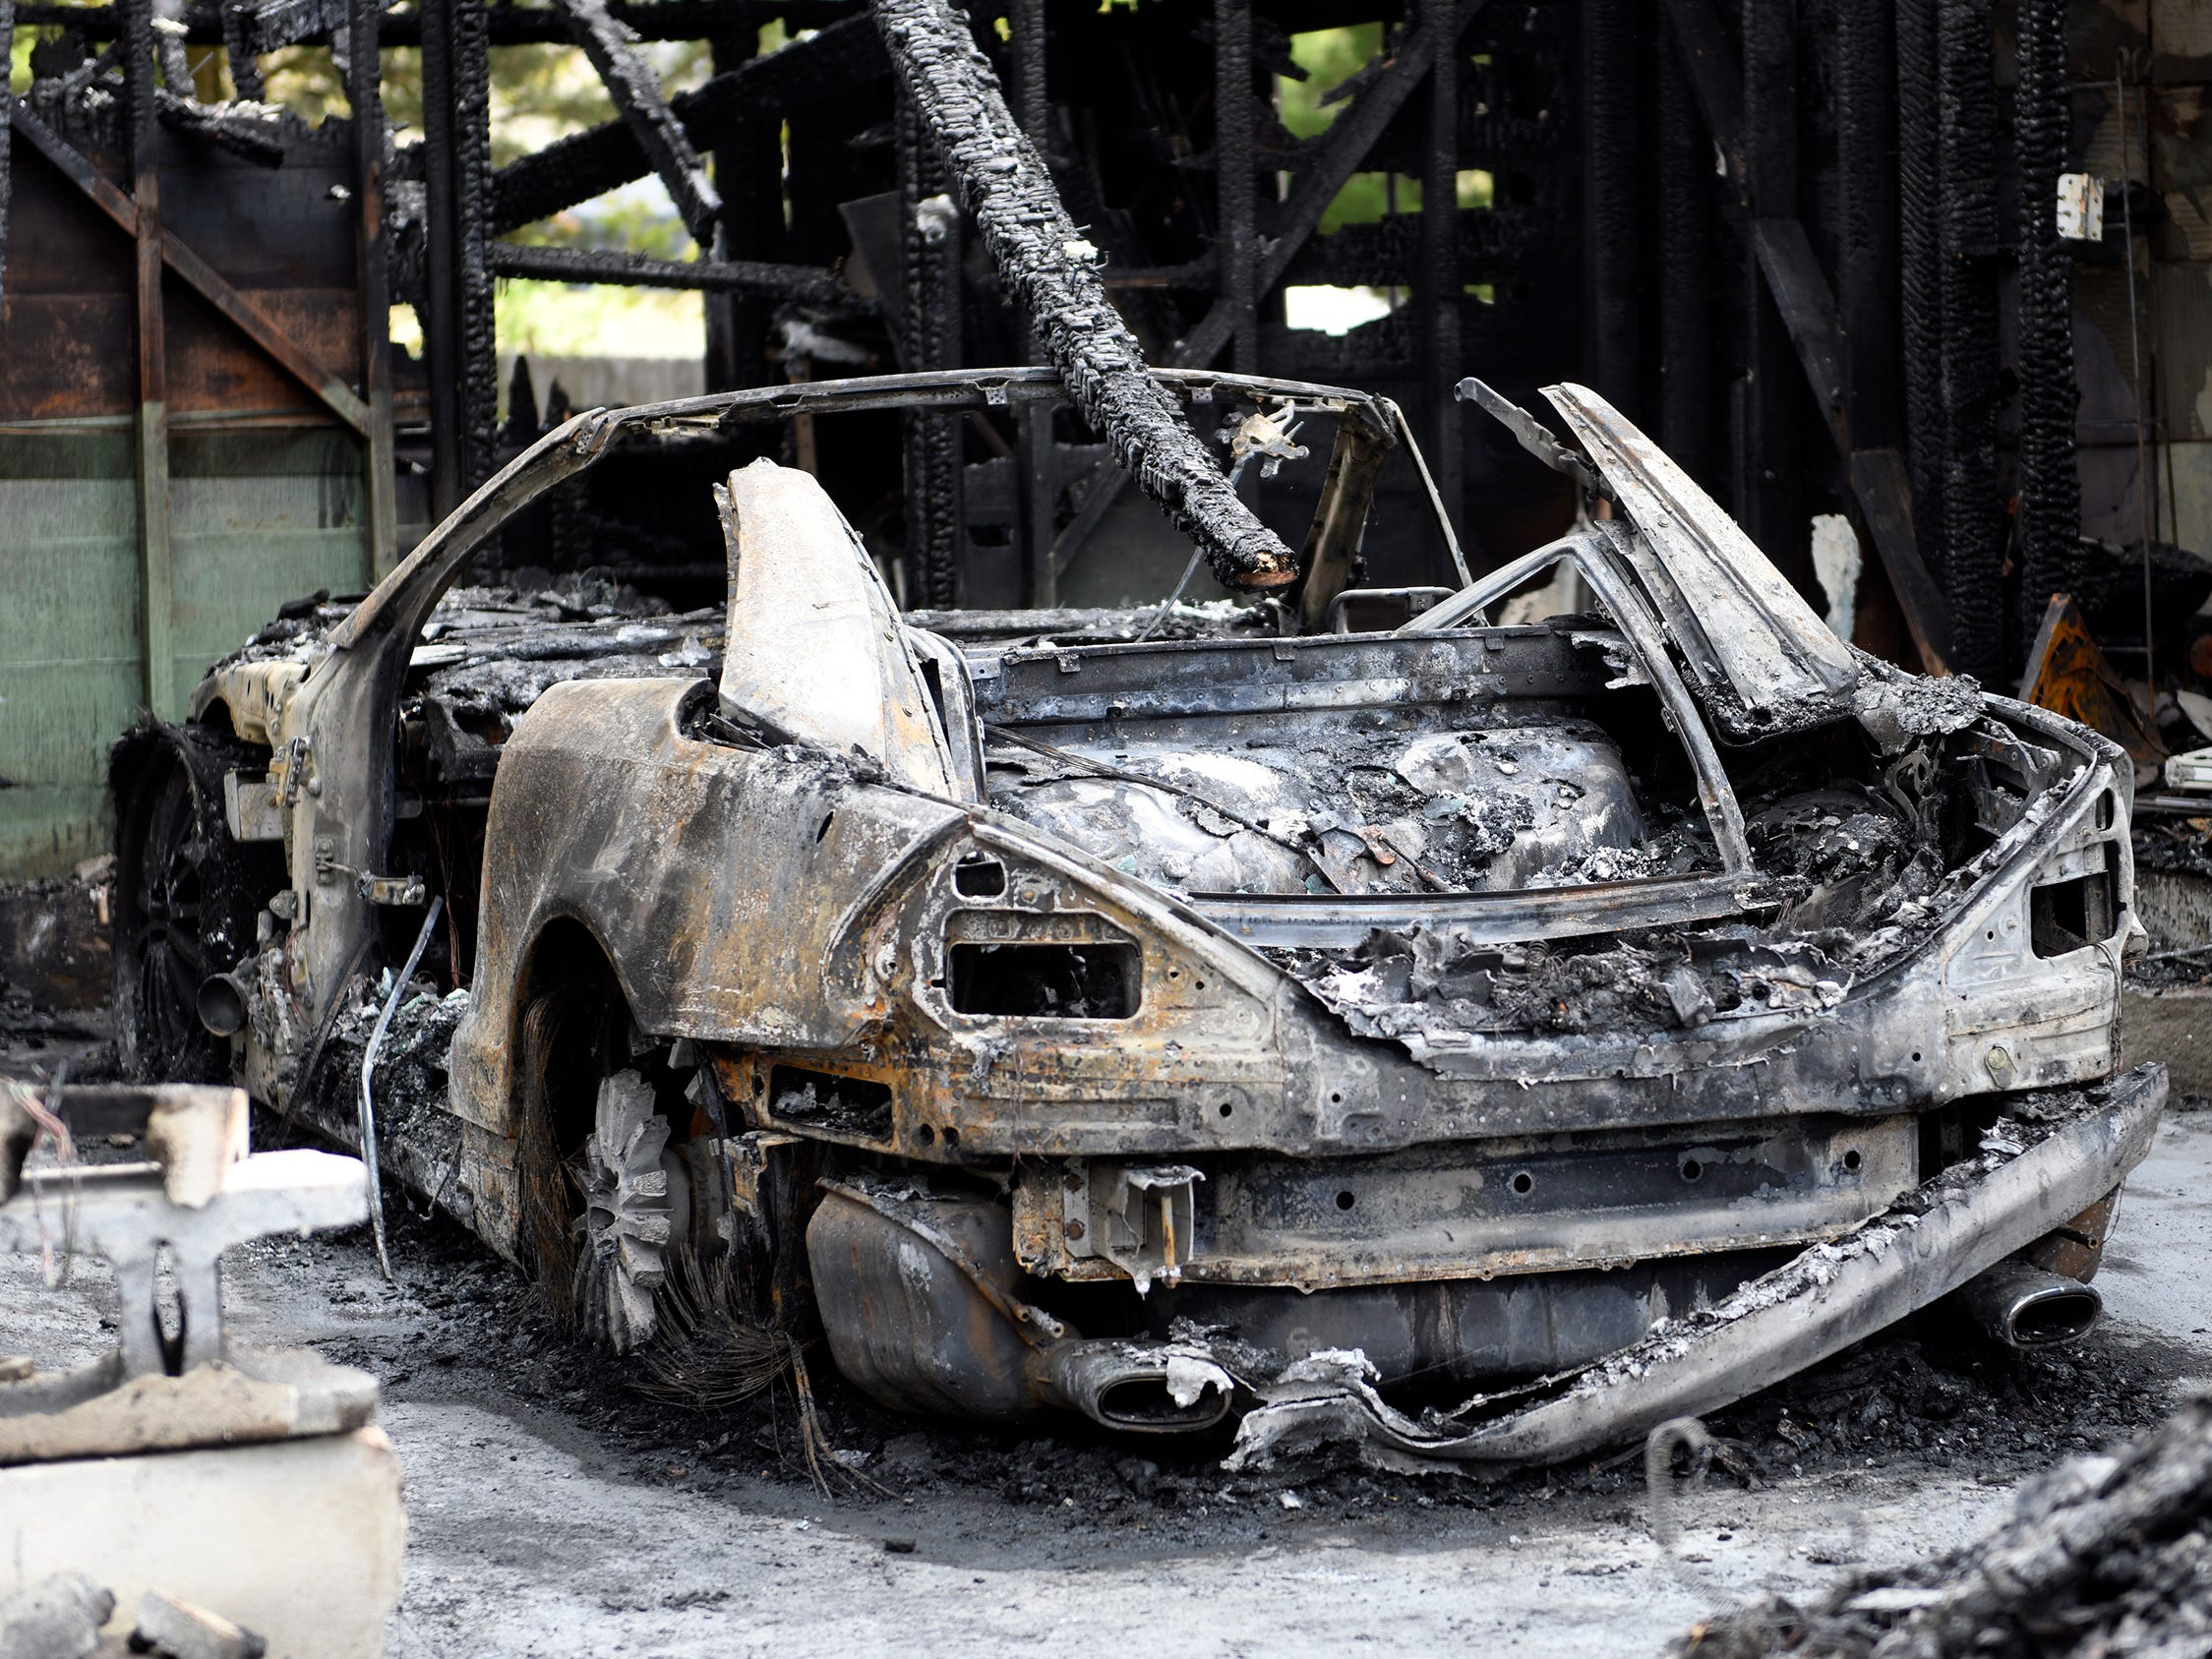 A Nissan 350 ZX and a Mercedes SL 500, parked inside the garage, were destroyed in Monday's blaze.